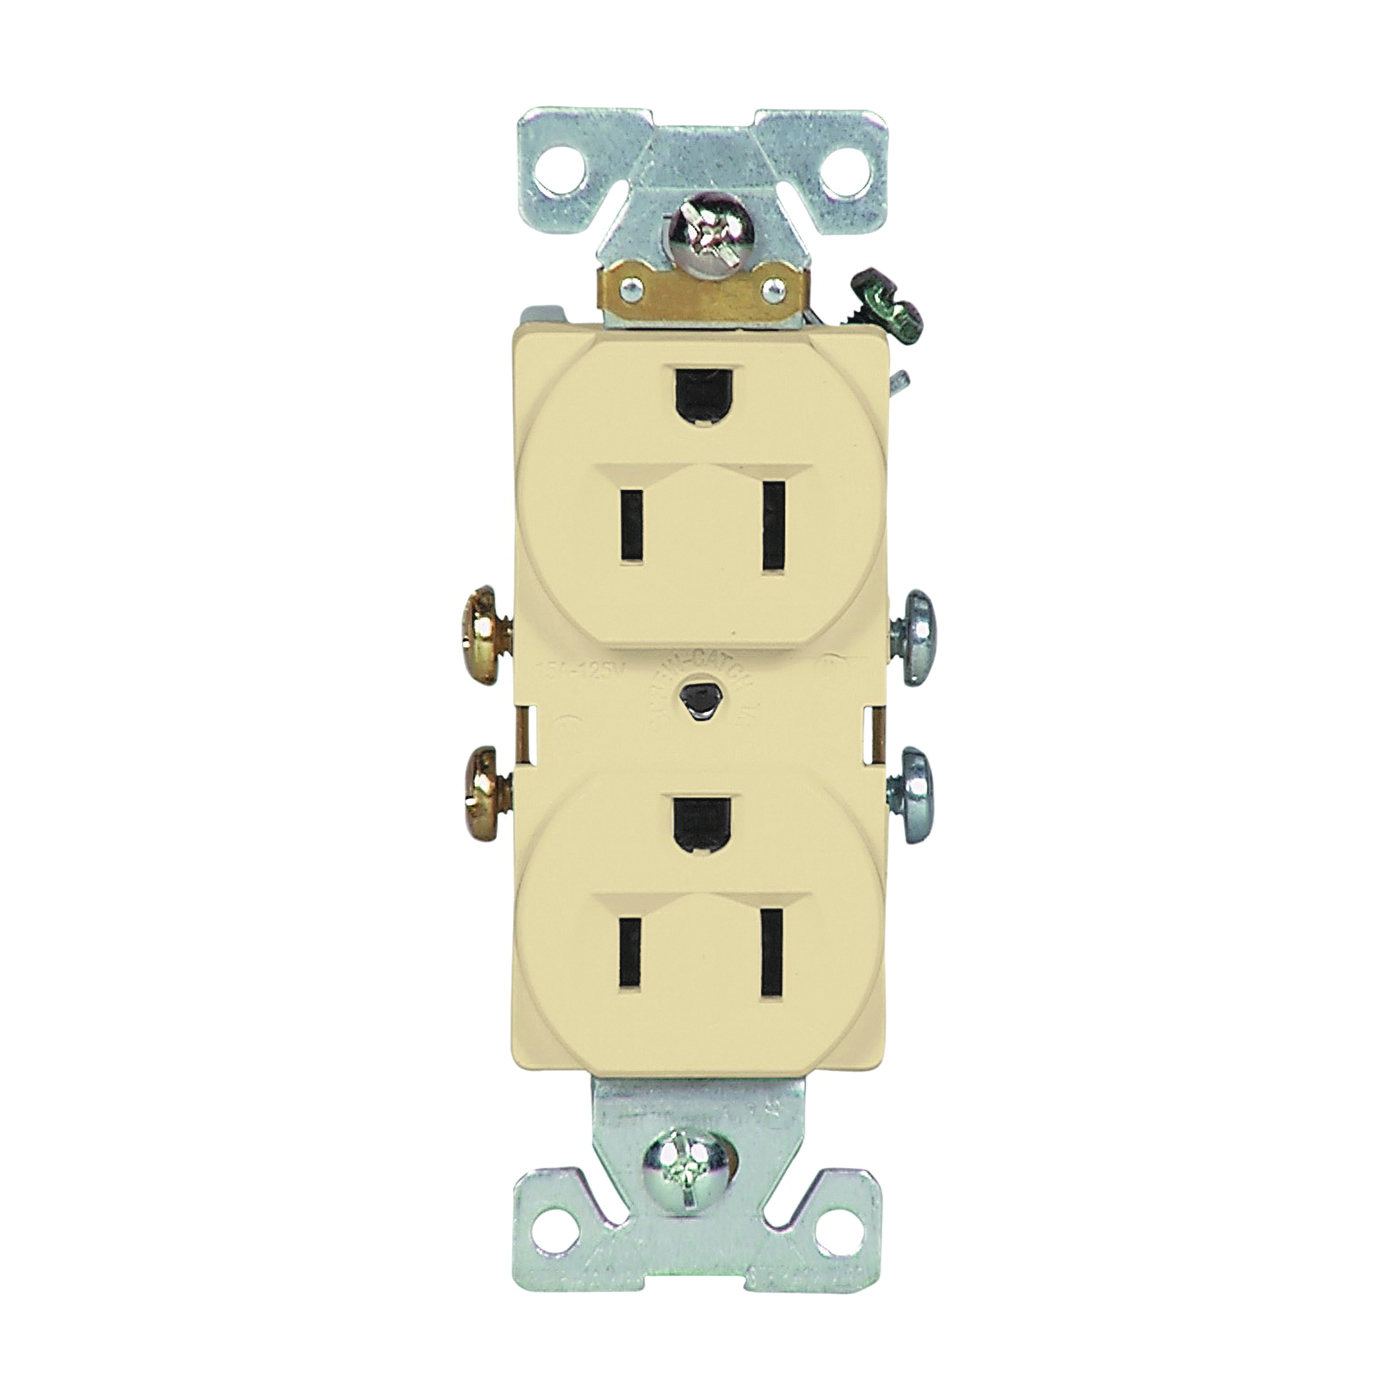 Picture of Eaton Wiring Devices 827V-BOX Duplex Receptacle, 2-Pole, 15 A, 125 V, Side Wiring, NEMA: 5-15R, Ivory